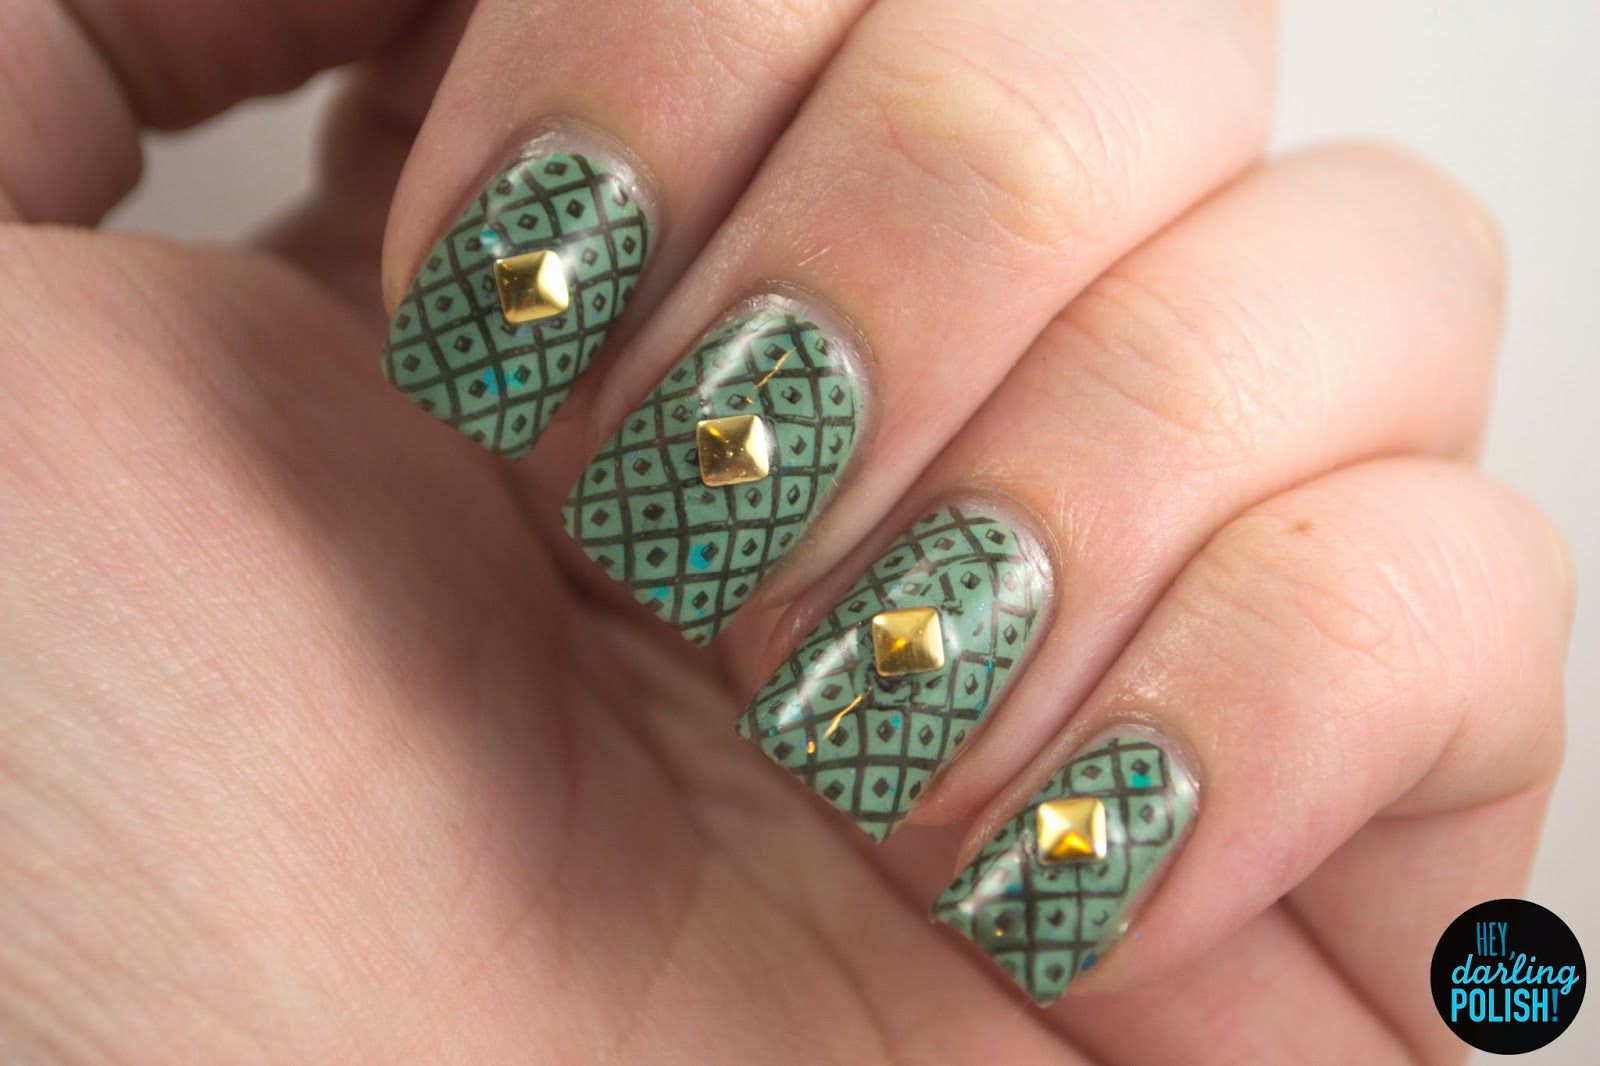 nails, nail art, nail polish, indie, indie nail polish, indie polish, green, stamping, gold, studs, the never ending pile challenge, tgpnpc, hey darling polish